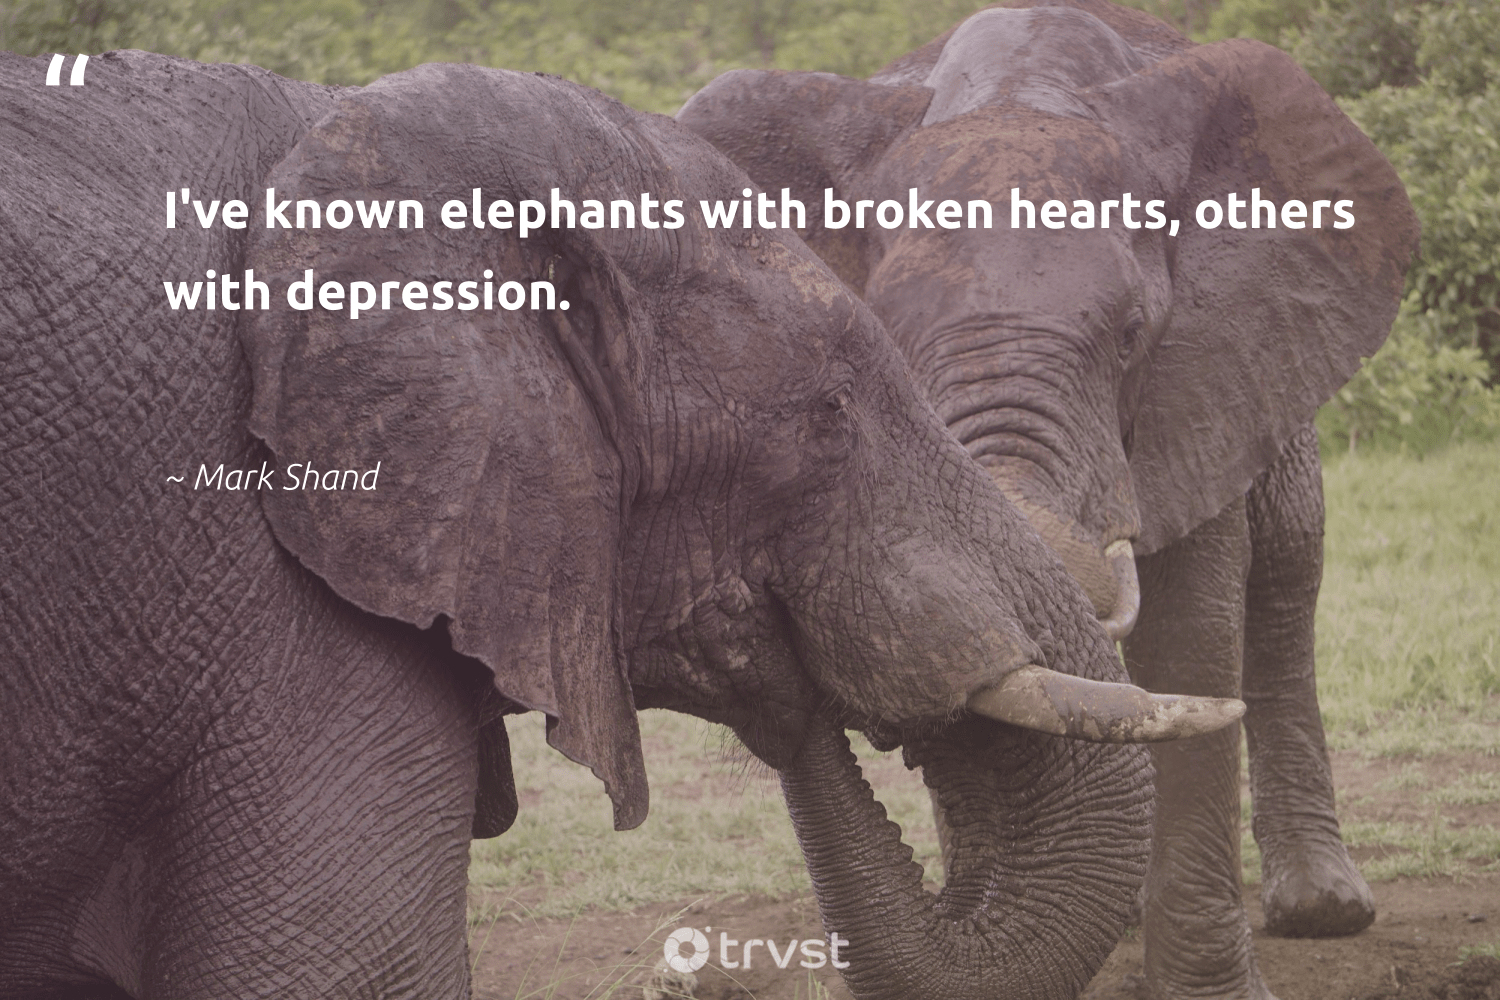 """""""I've known elephants with broken hearts, others with depression.""""  - Mark Shand #trvst #quotes #depression #elephants #anxiety #endangered #begreat #socialchange #mentalhealthmatters #elephantlove #mindset #takeaction"""